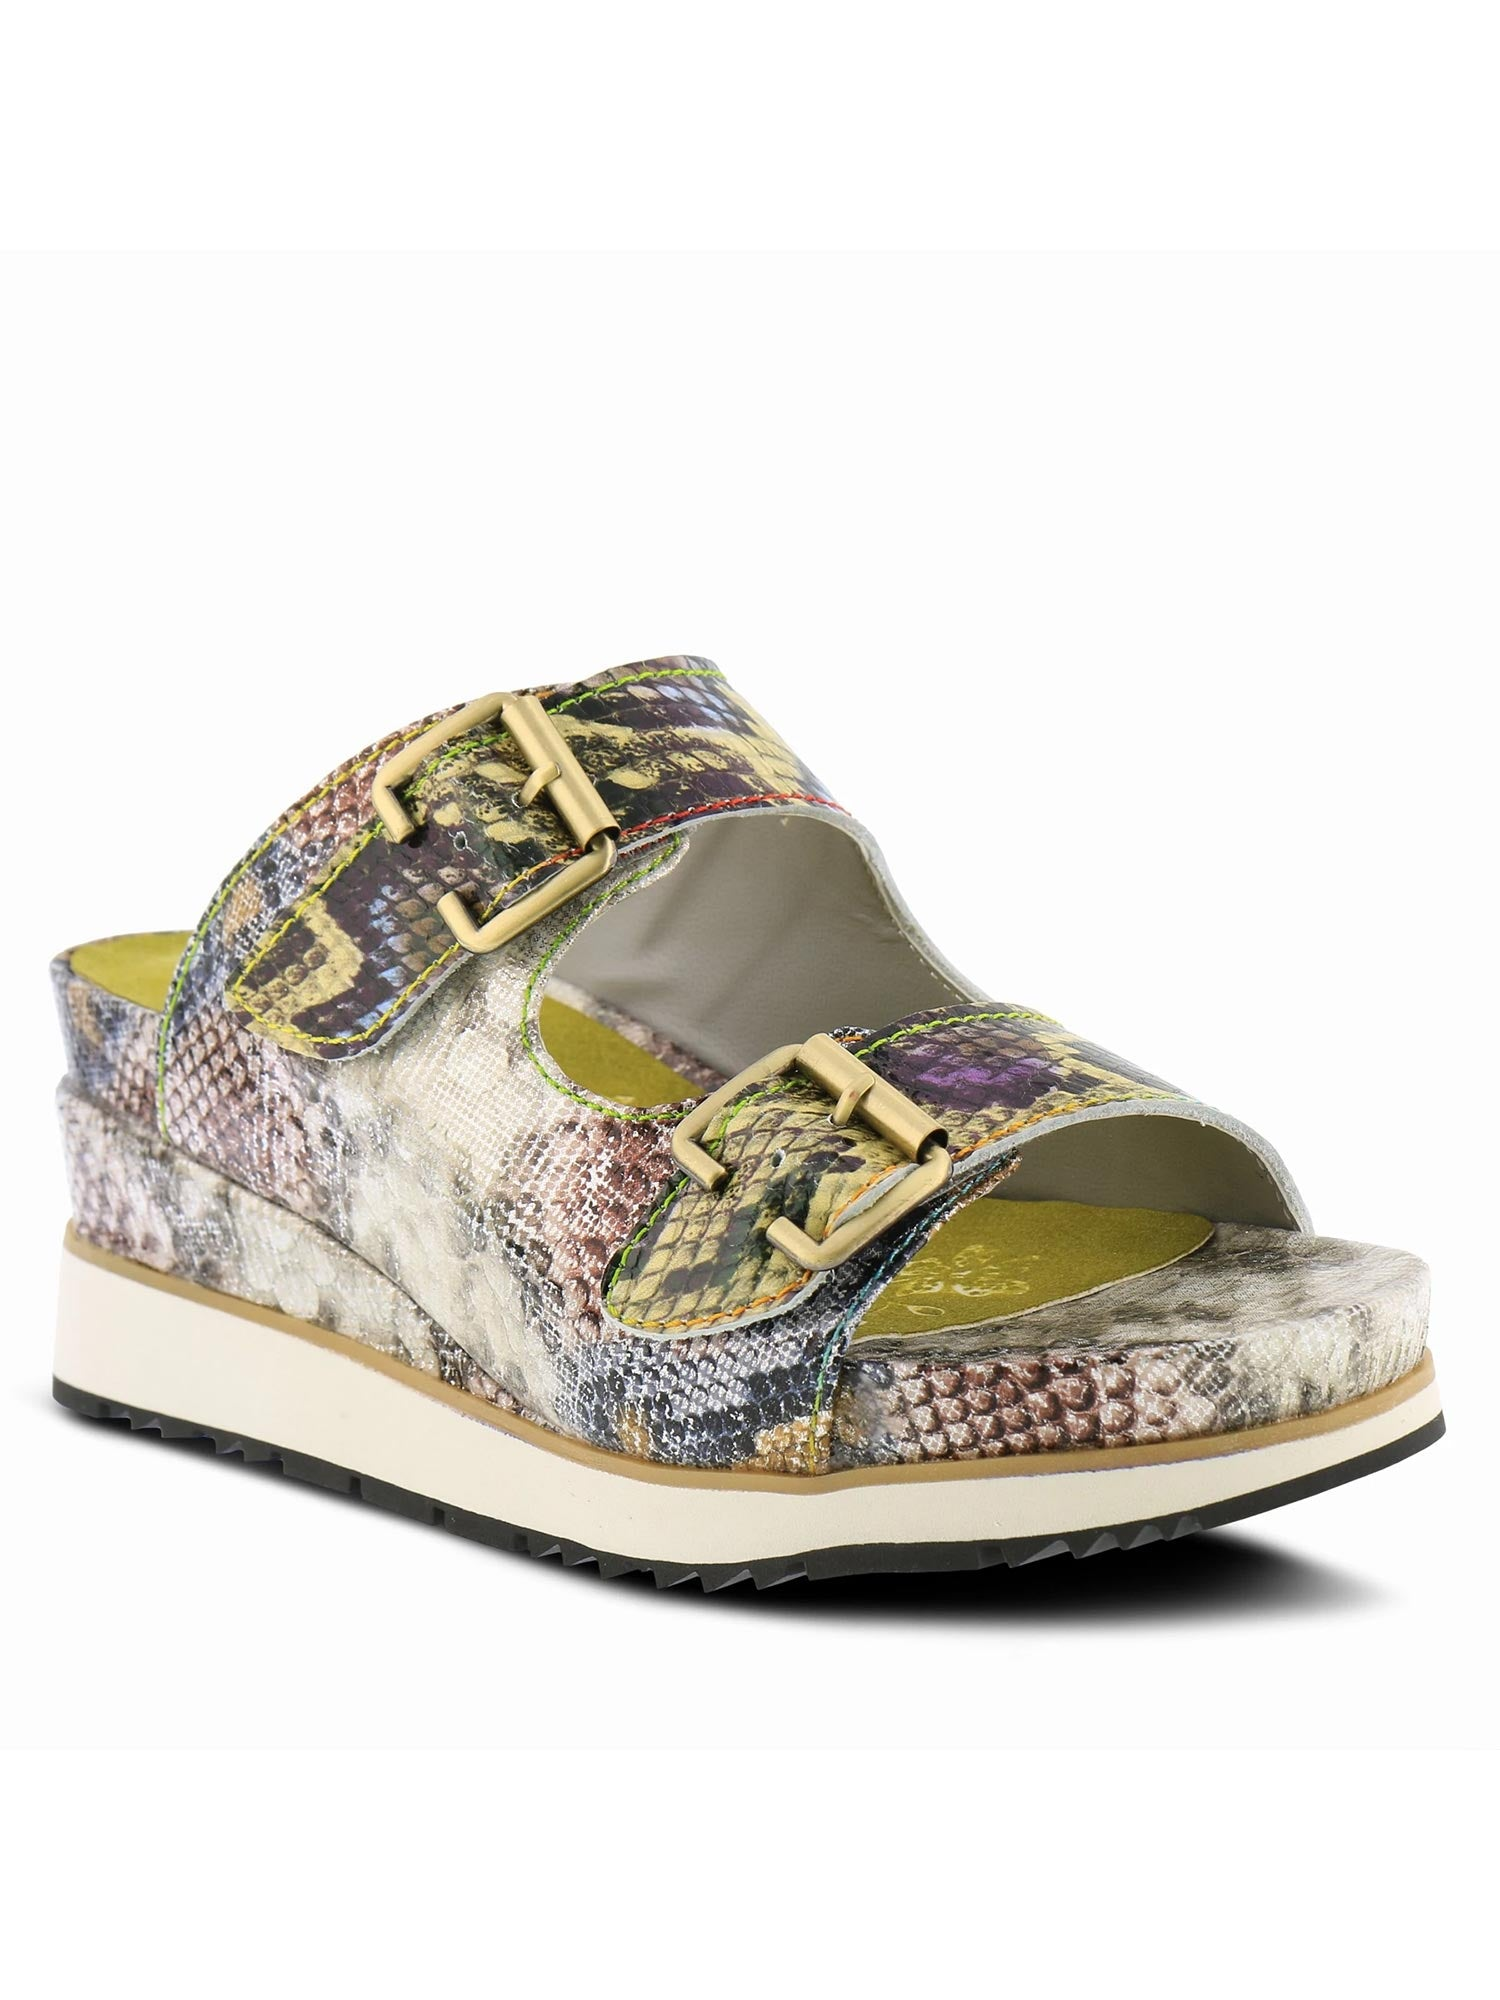 L'Artiste by Spring Step - Kitty Platform Slide Sandal in Lime Multi